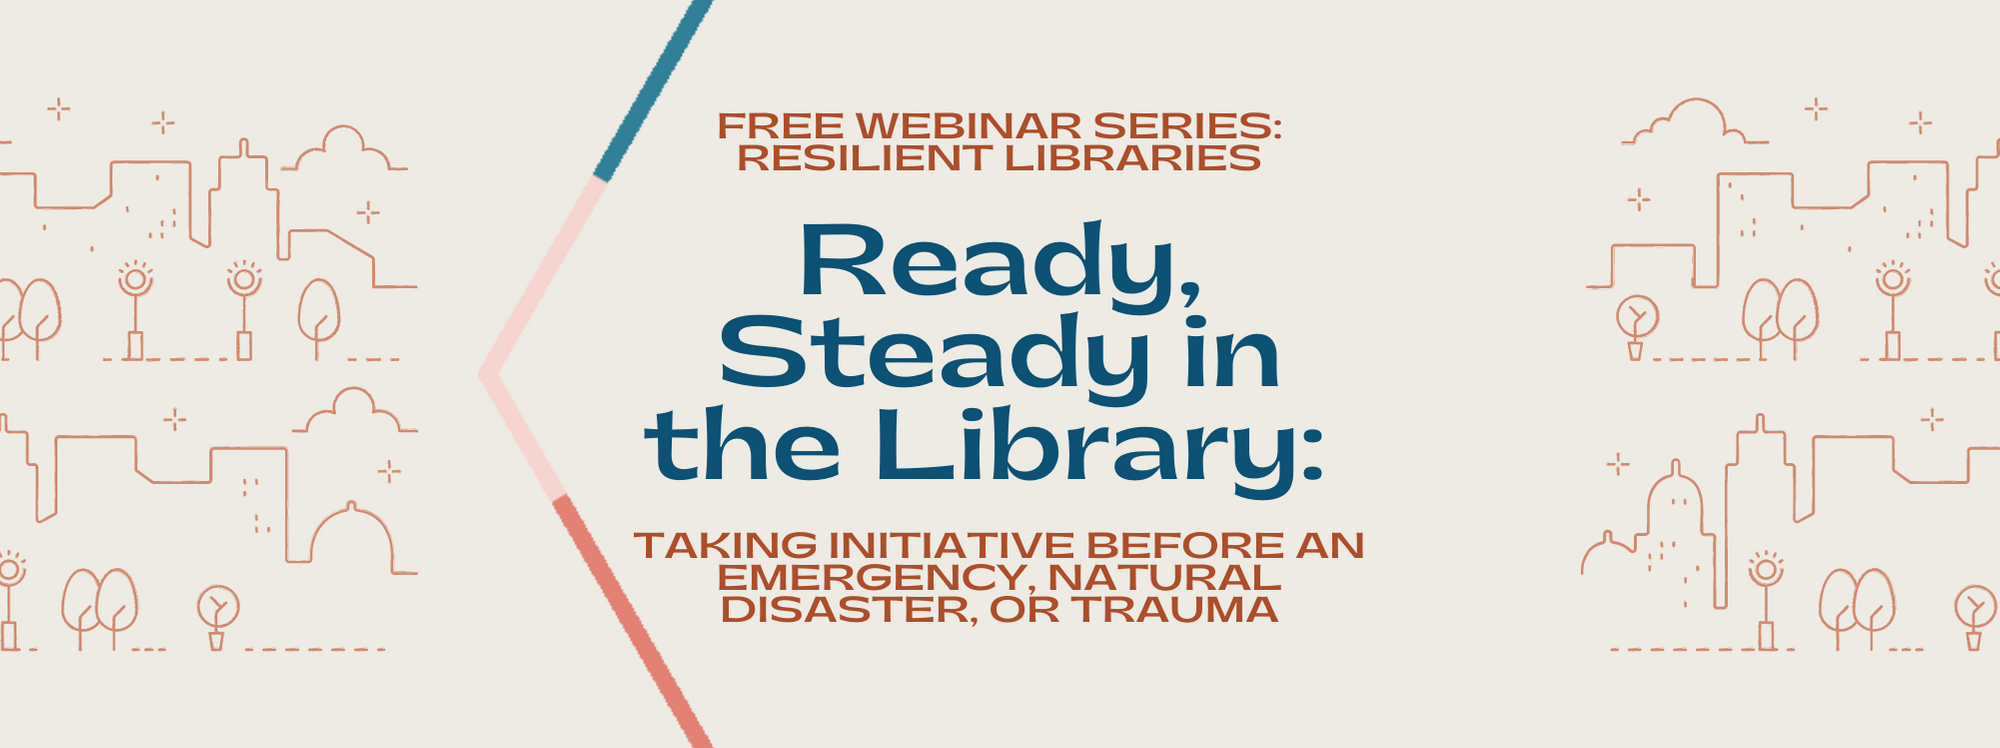 Free Webinar Series: Resilient Libraries. Ready, Steady in the Library: Taking Initiative Before an Emergency, Natural Disaster, or Trauma